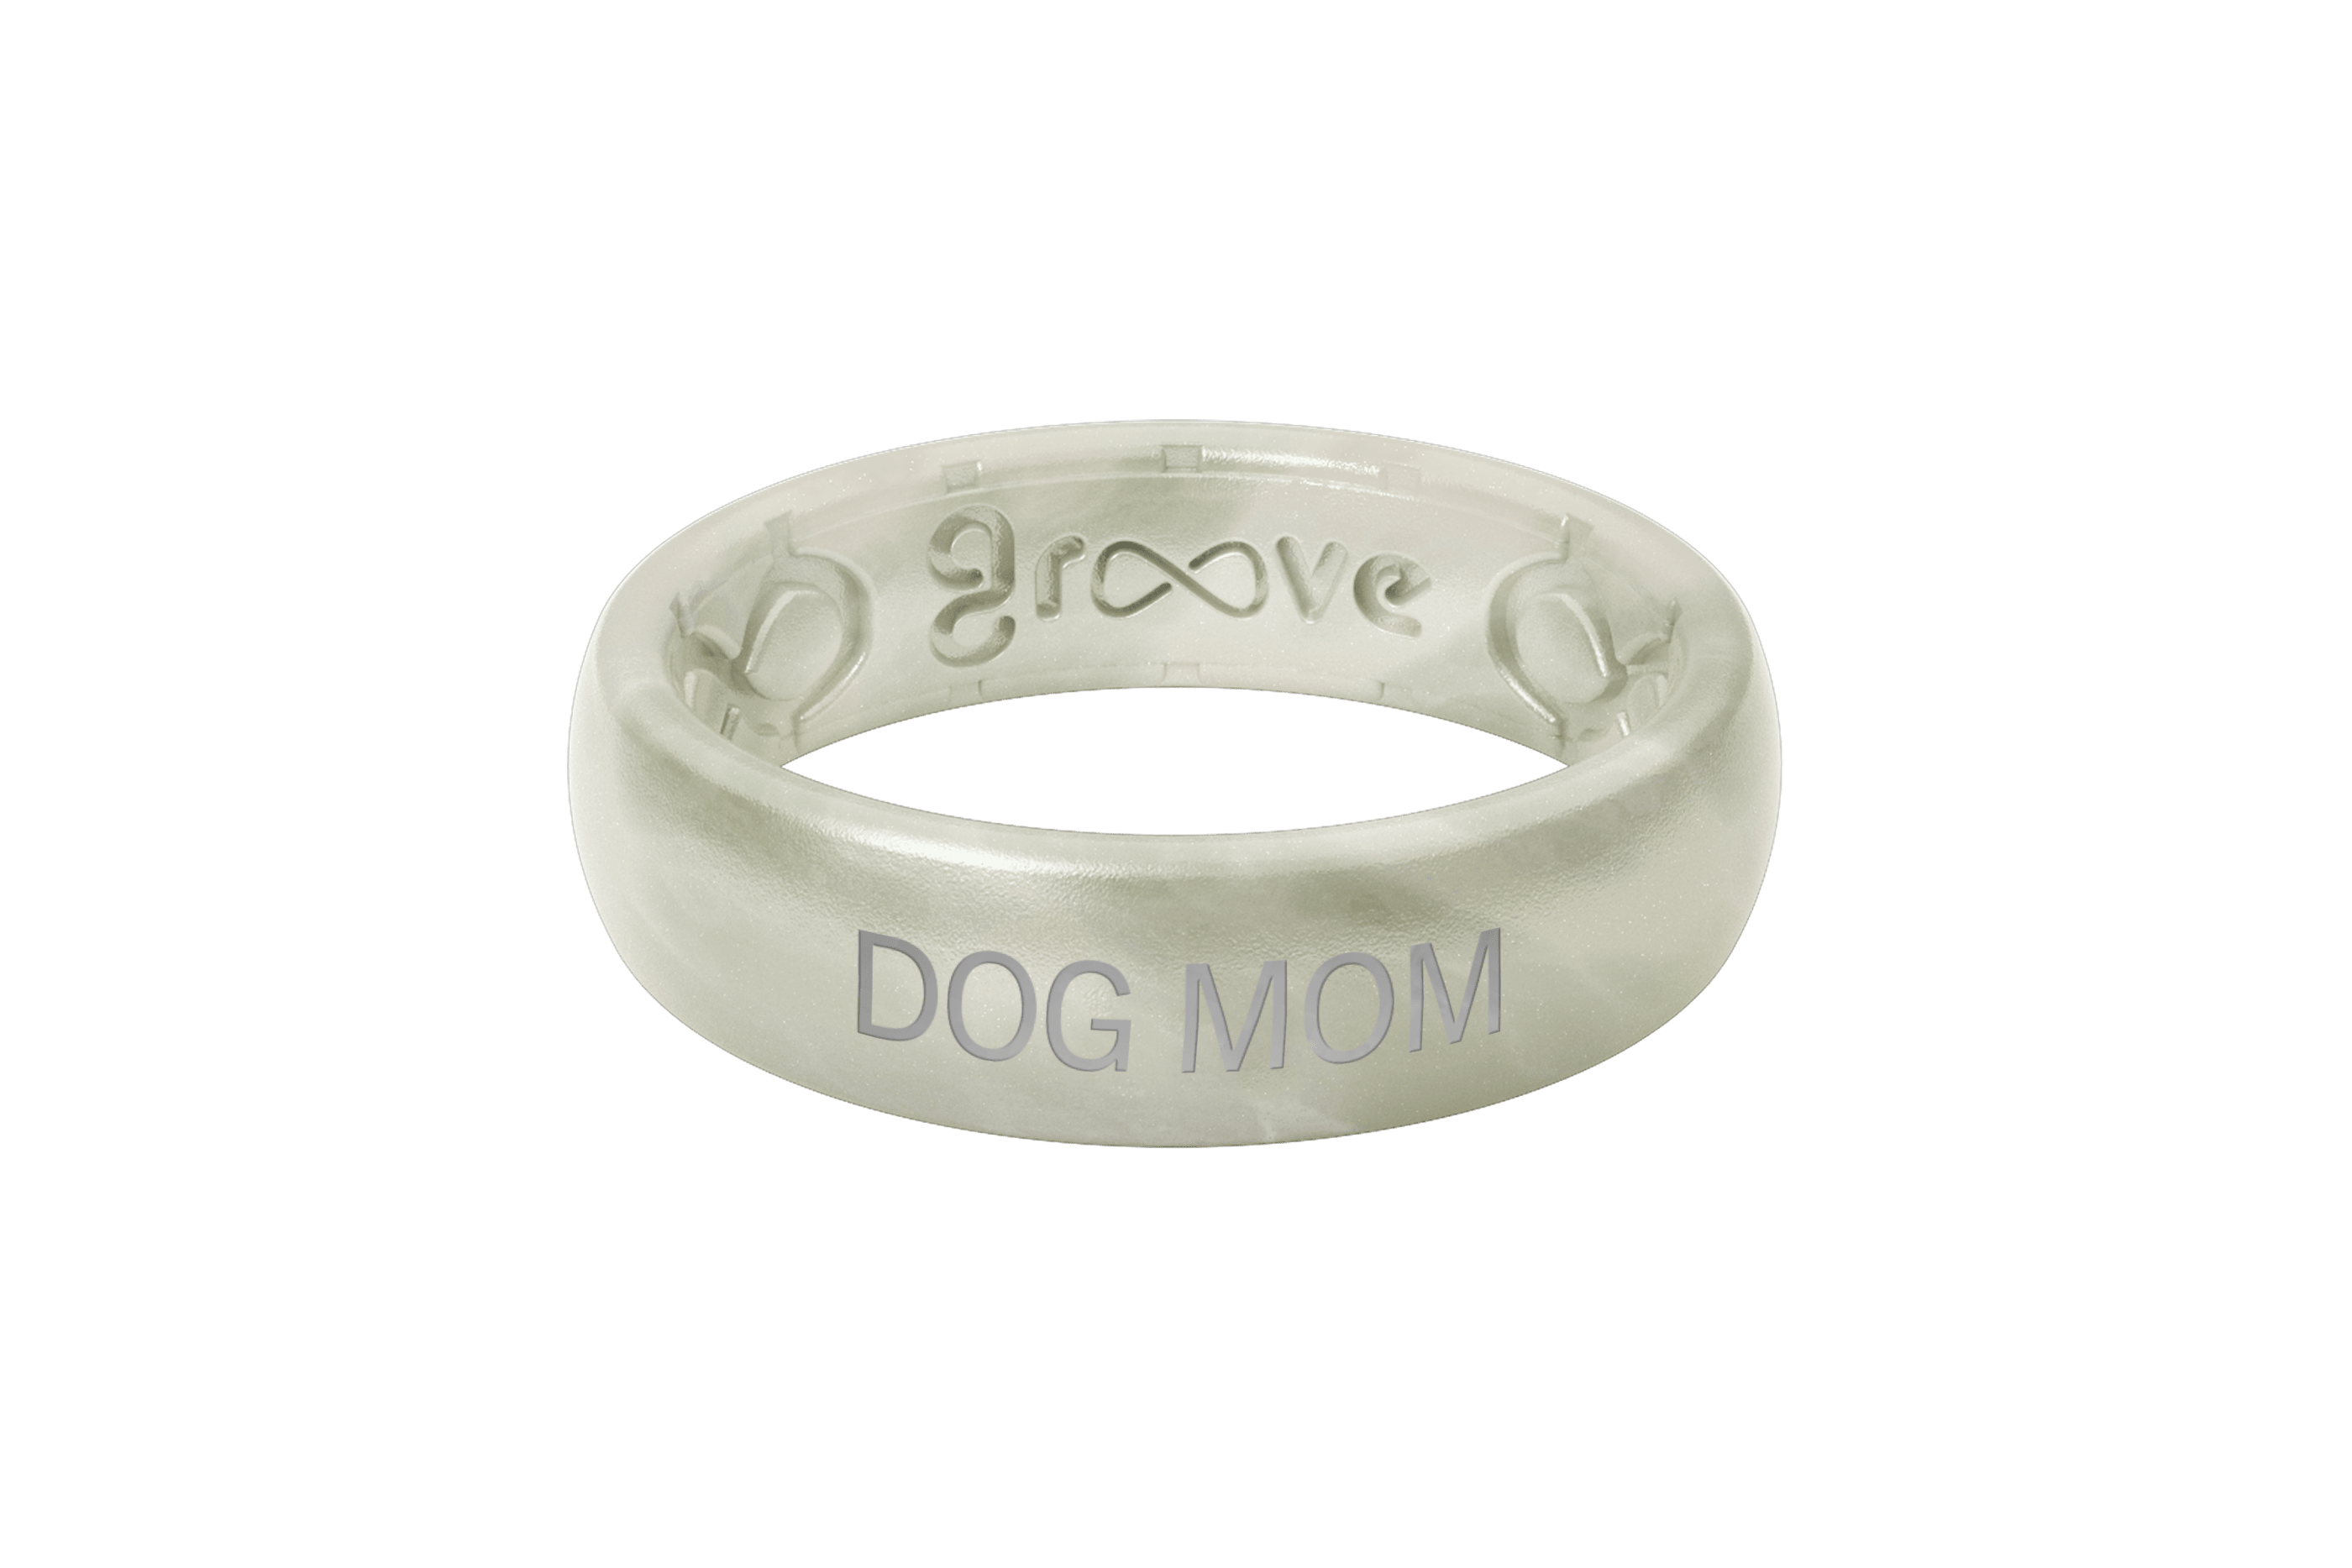 Pearl Dog Mom  viewed front on